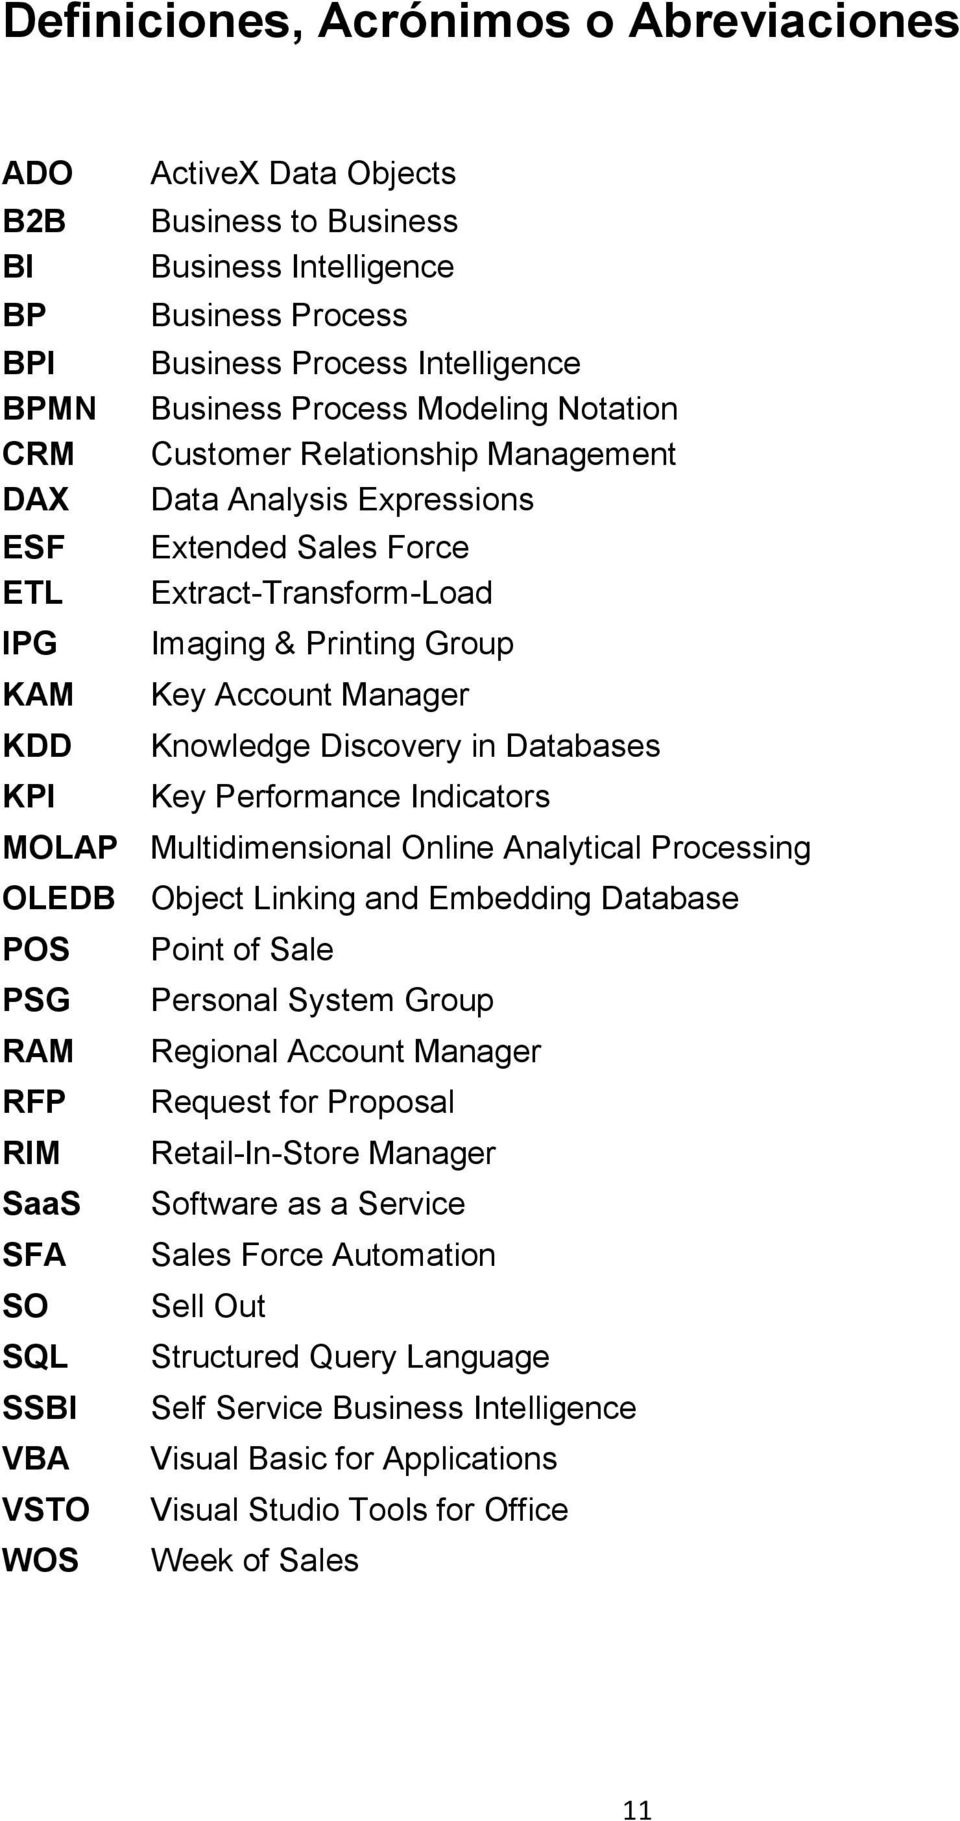 Discovery in Databases KPI Key Performance Indicators MOLAP Multidimensional Online Analytical Processing OLEDB Object Linking and Embedding Database POS Point of Sale PSG Personal System Group RAM